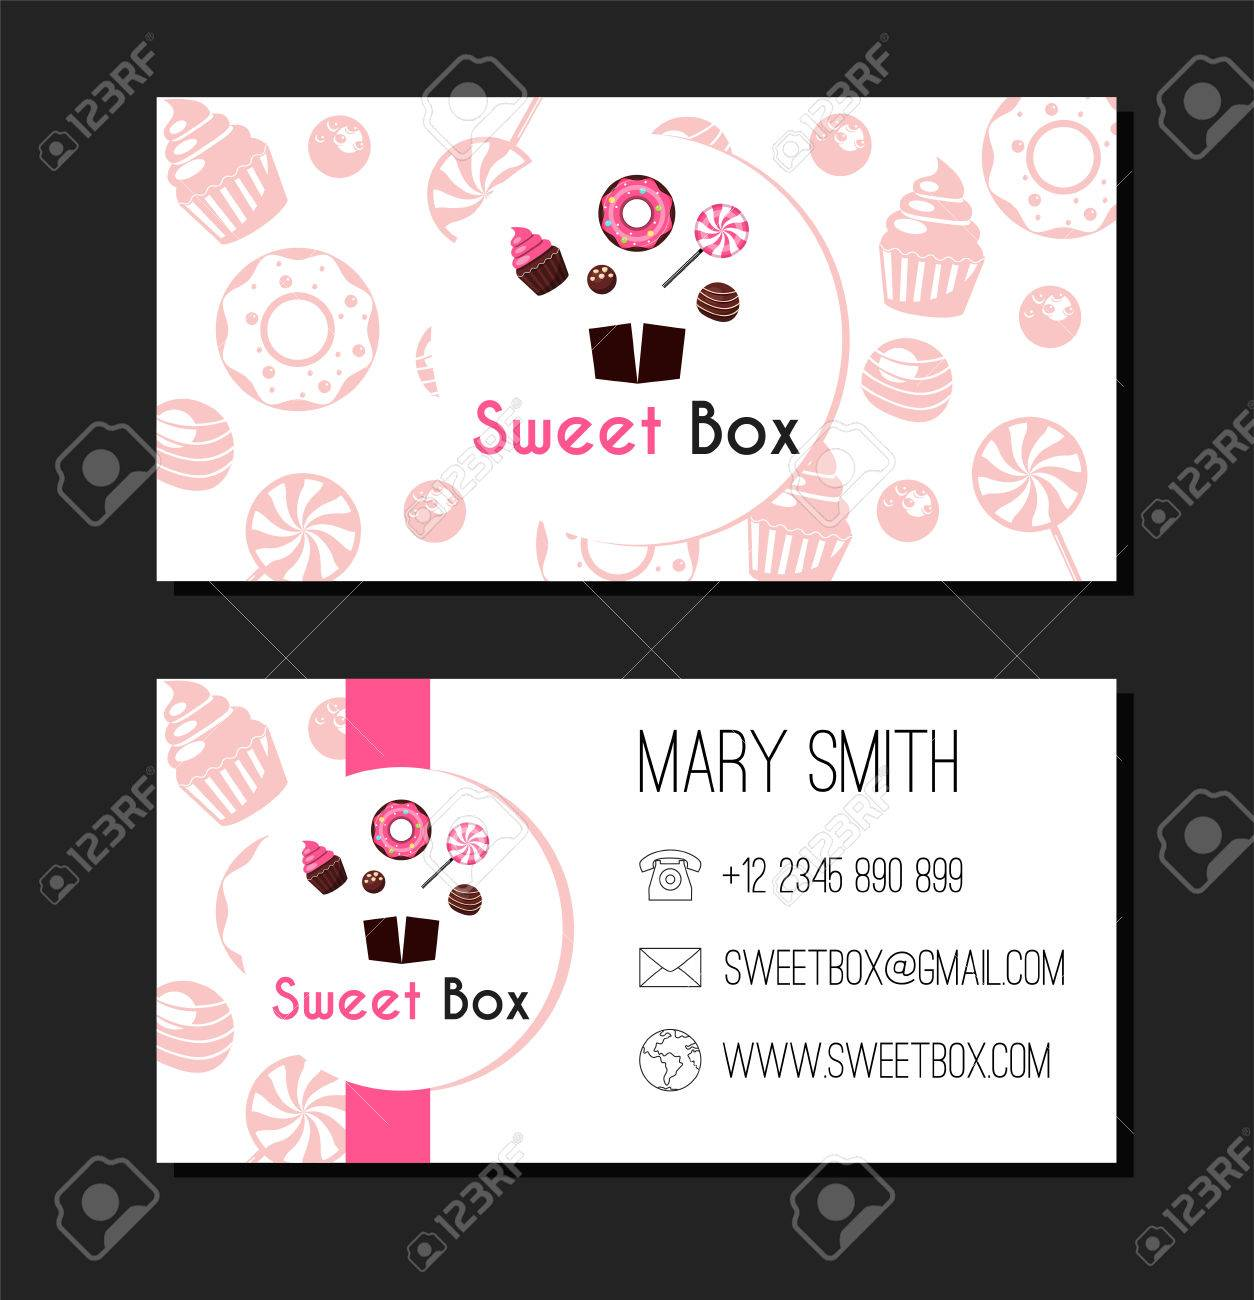 The best font for business cards choice image free business cards font for business cards images free business cards donuts creative fonts for business cards and advertisements magicingreecefo Image collections